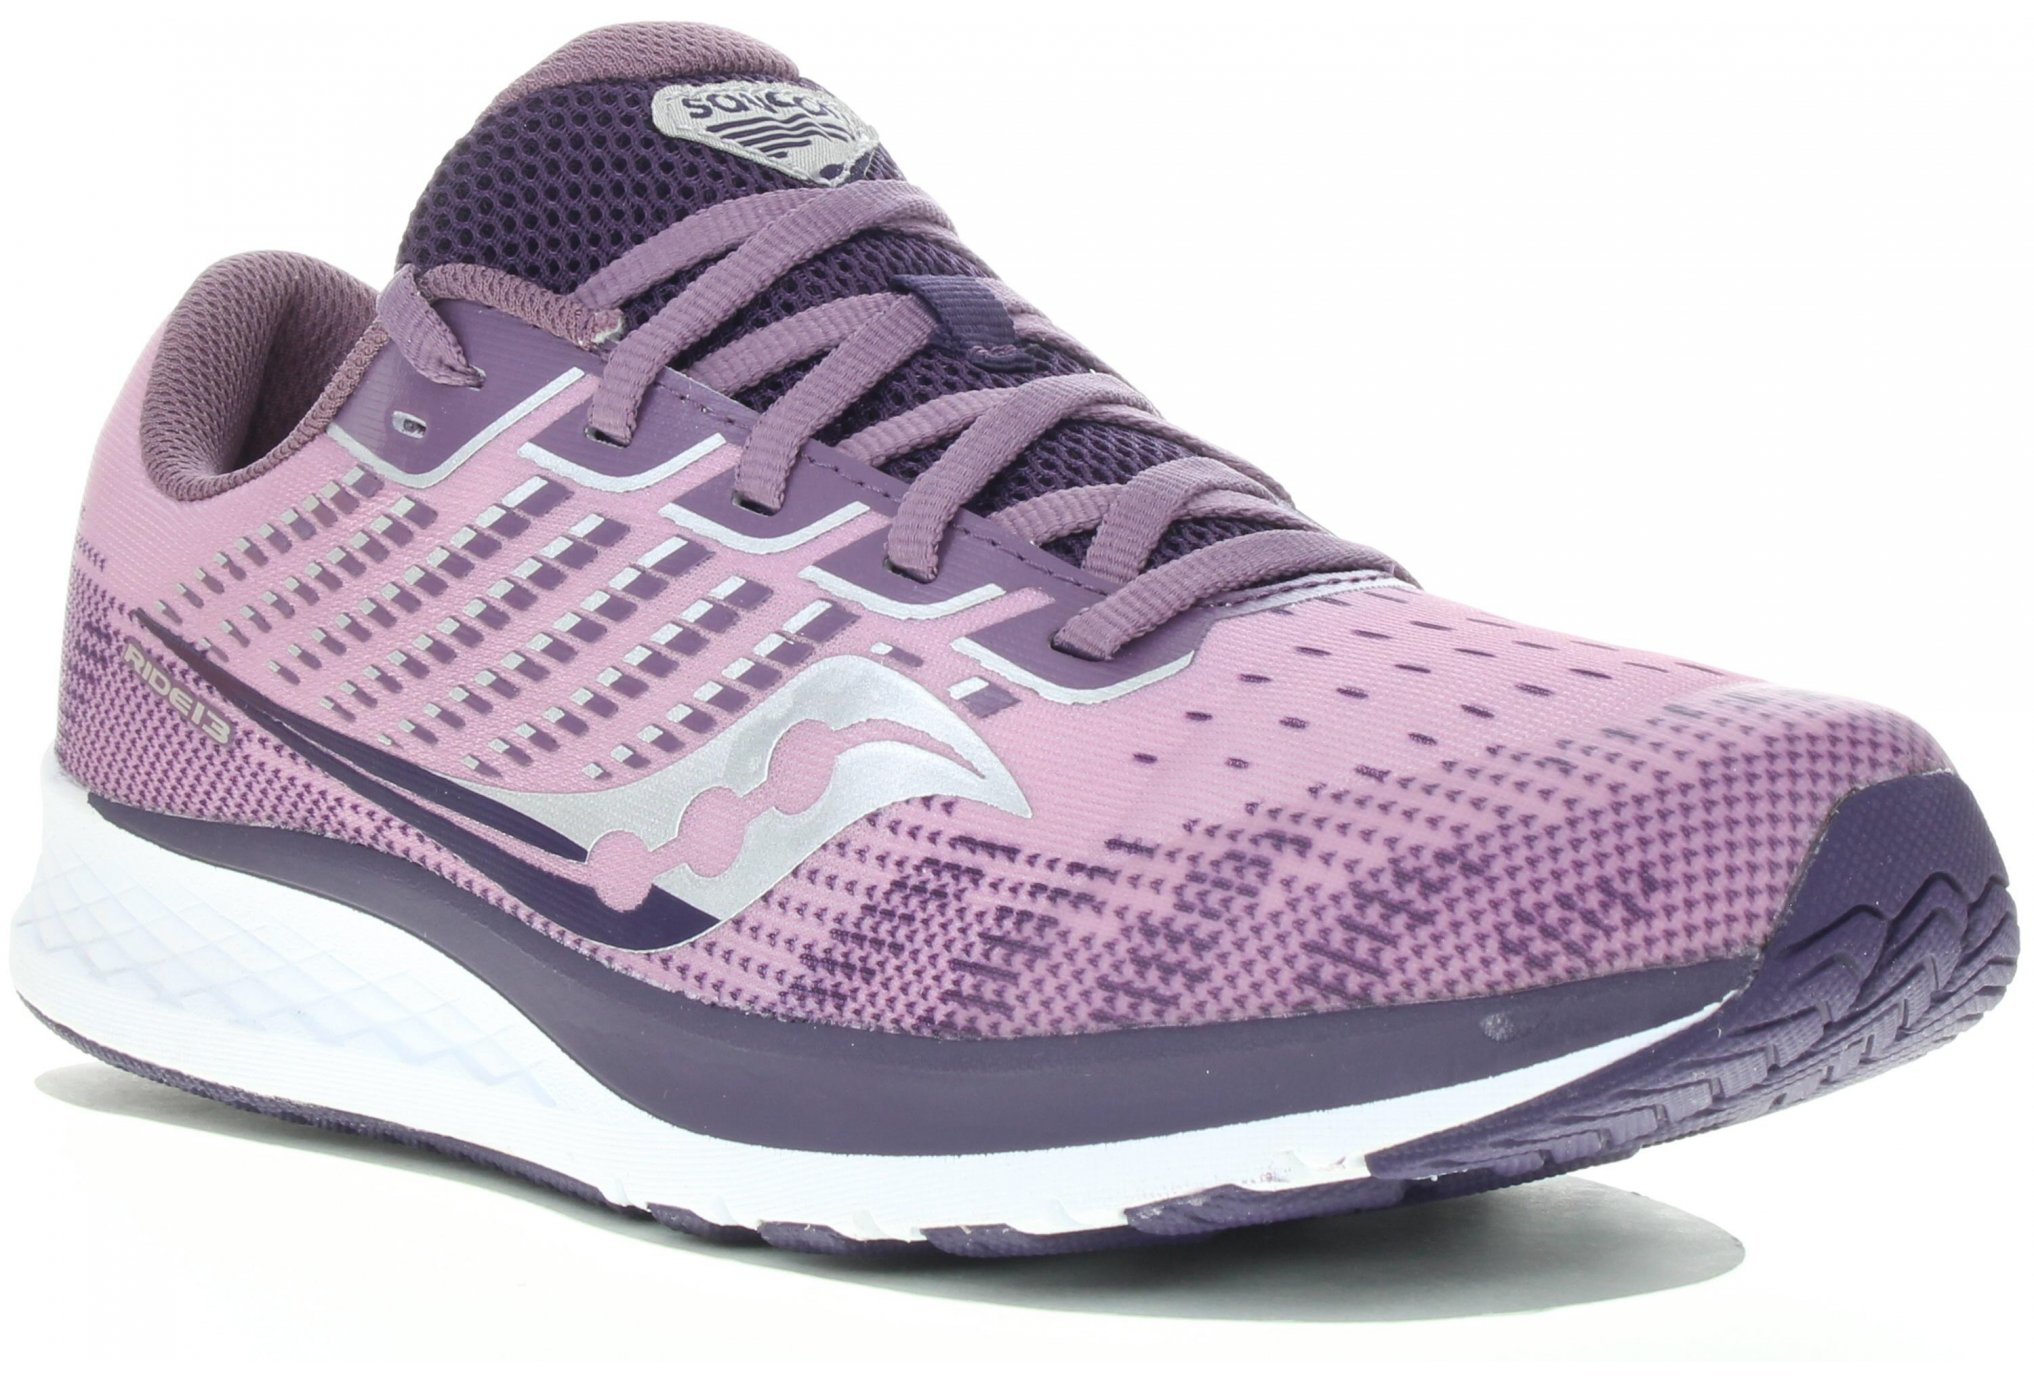 Saucony Ride 13 Fille Chaussures running femme